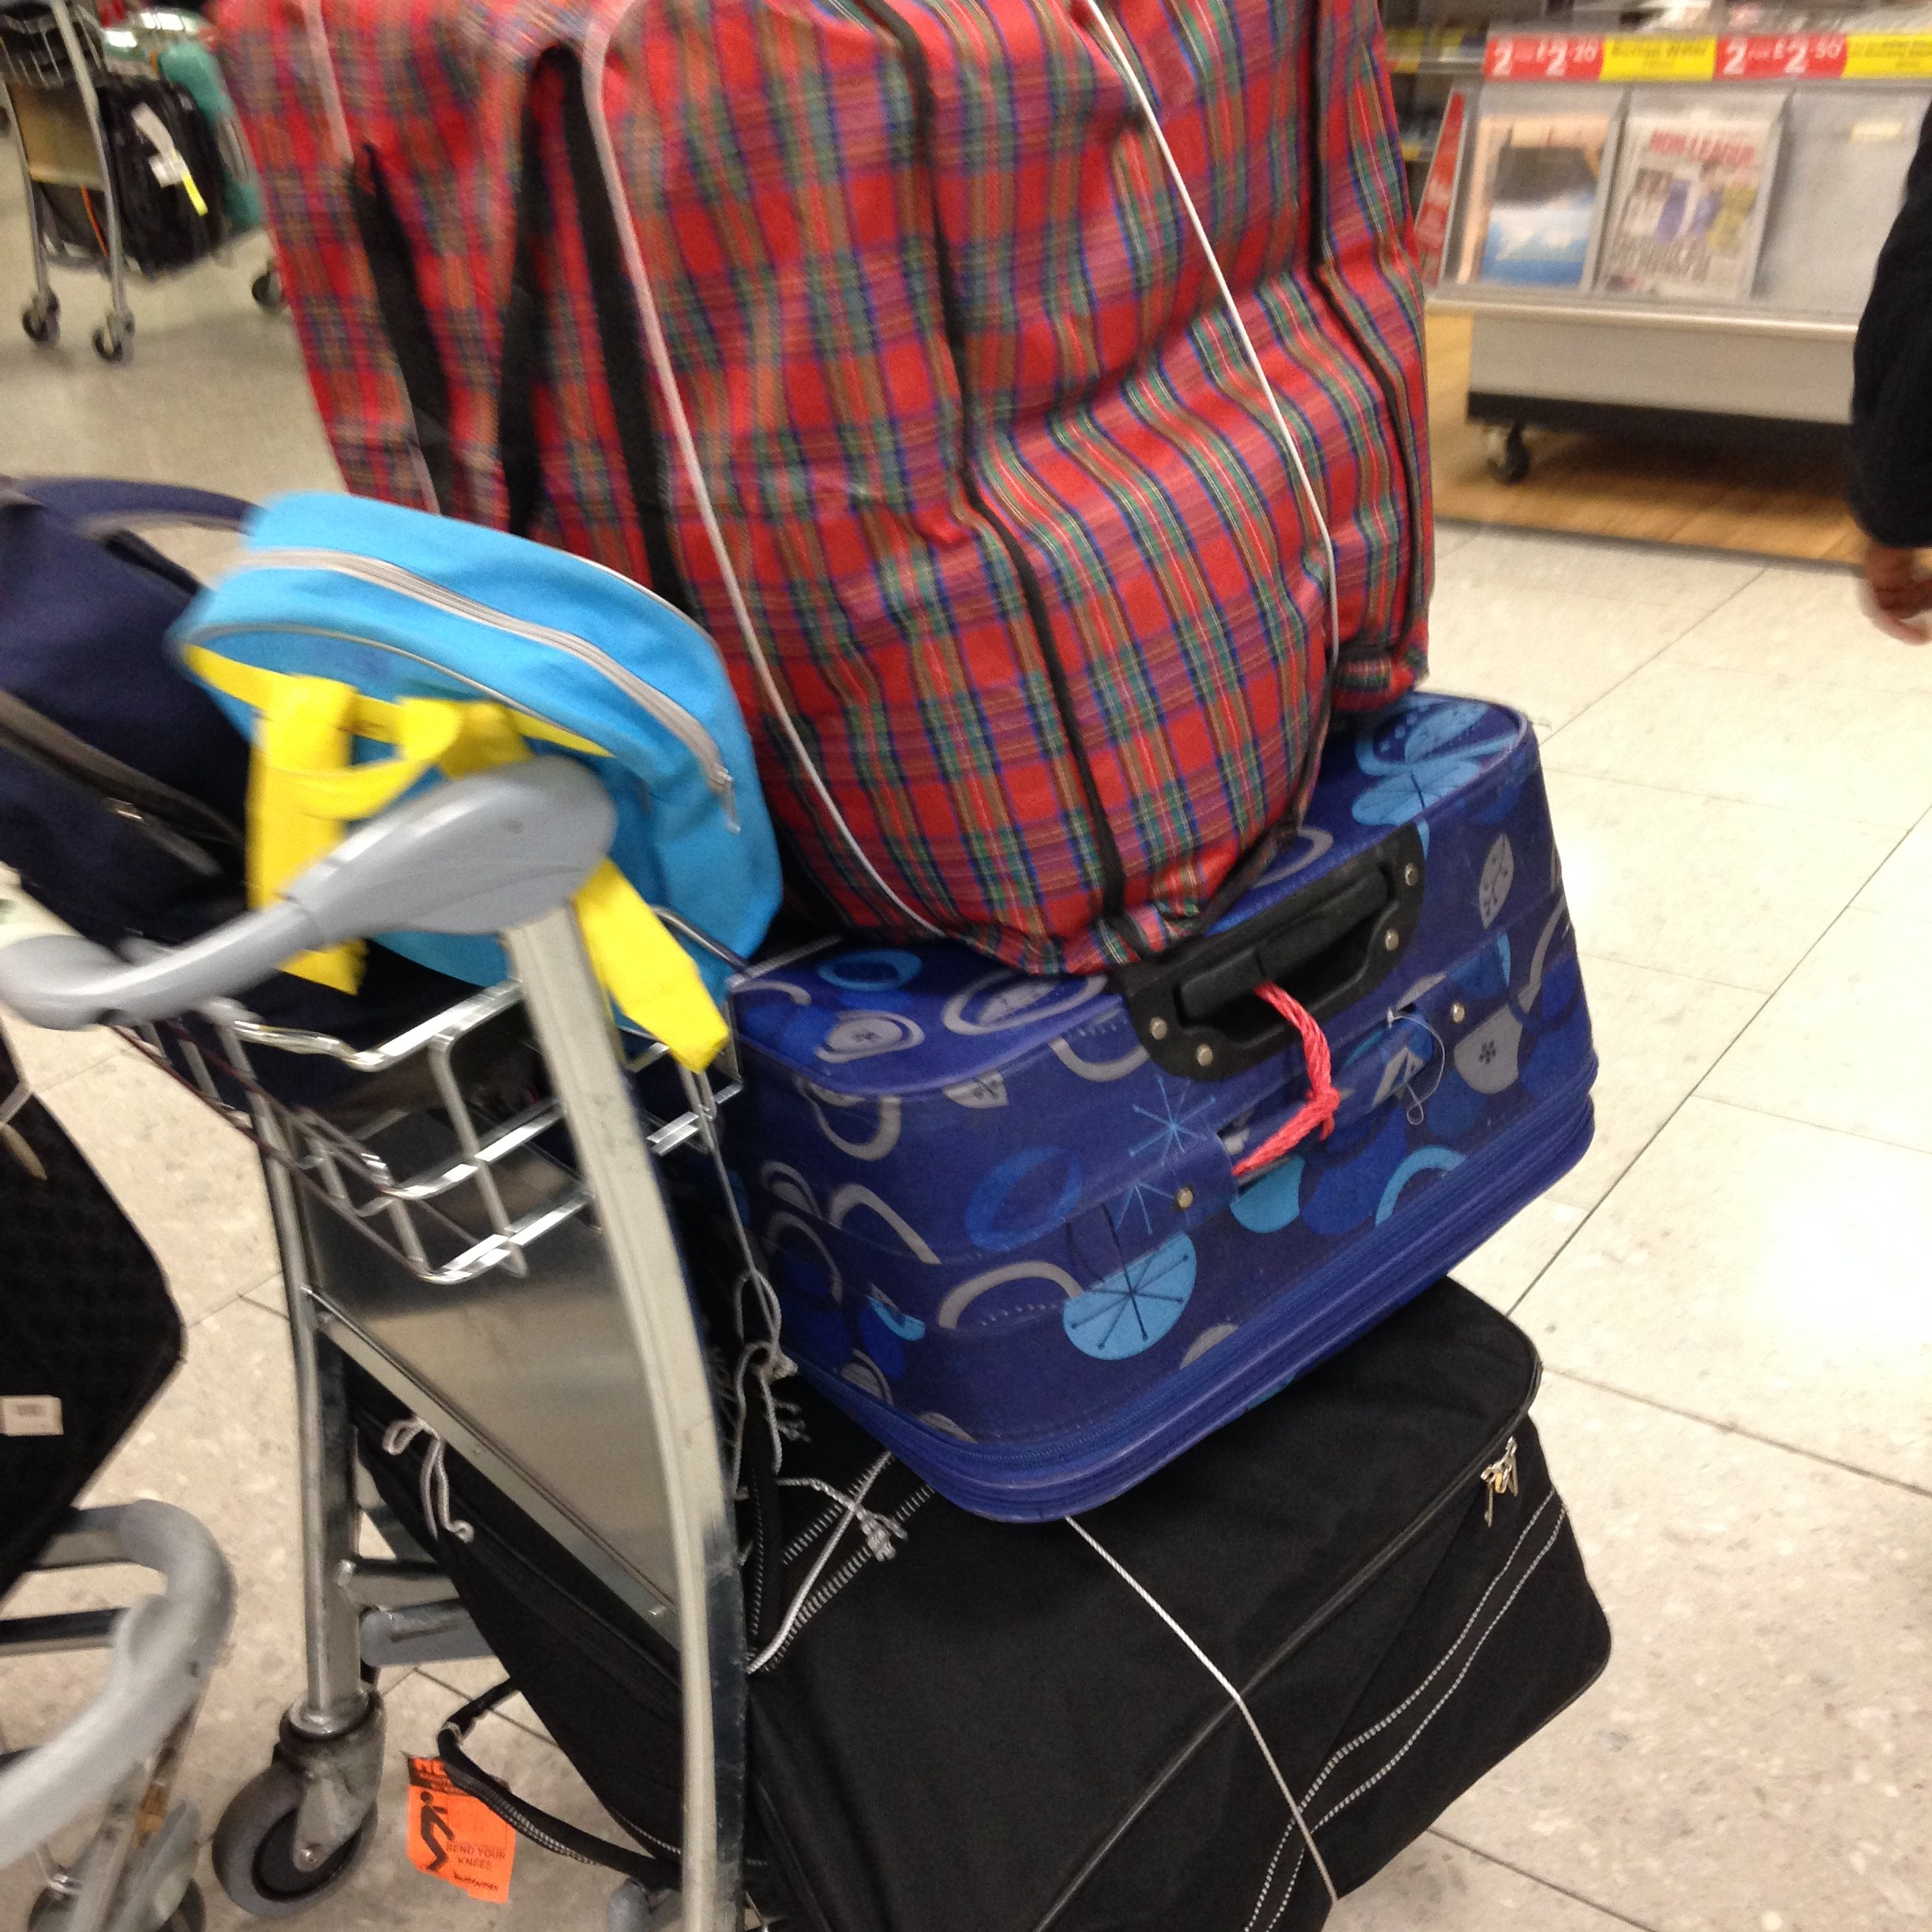 Airport Trolley full of bags